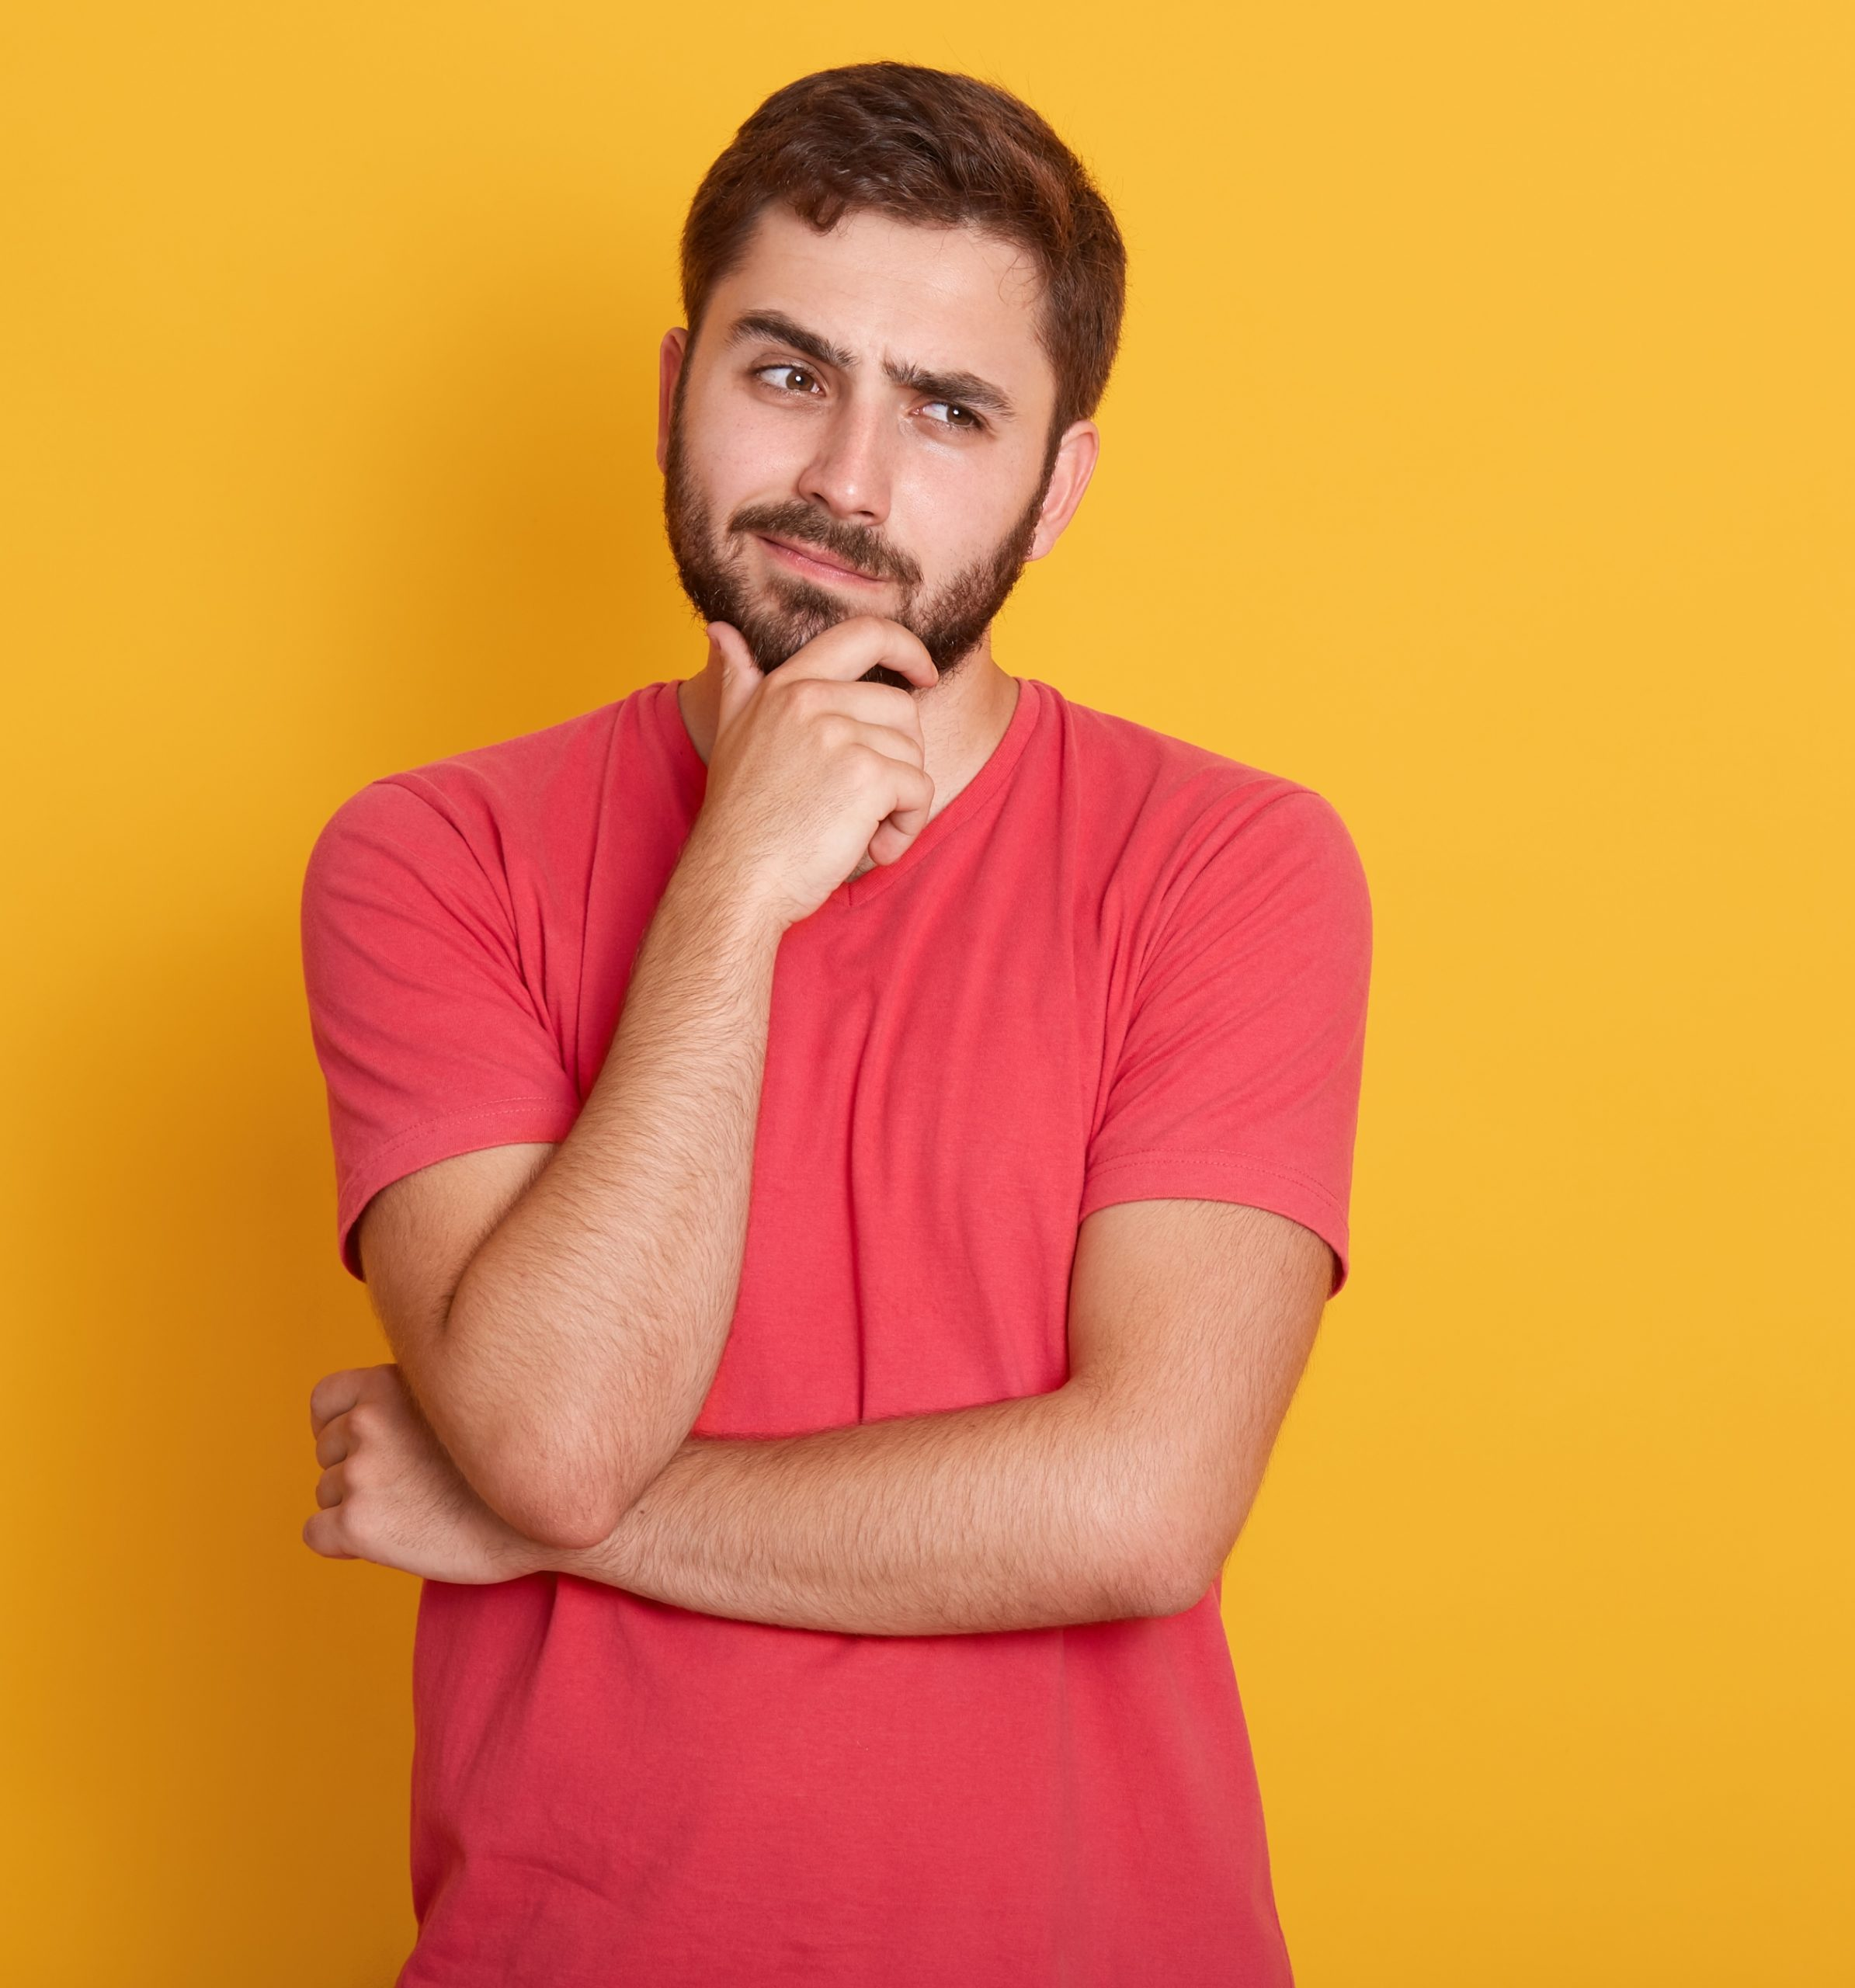 Horizontal shot of serious unshaven male dresses casual red t shirt, keeps hand under chin, looks aside with serious facial expression, thinks about something, poses over yellow wall with free space.